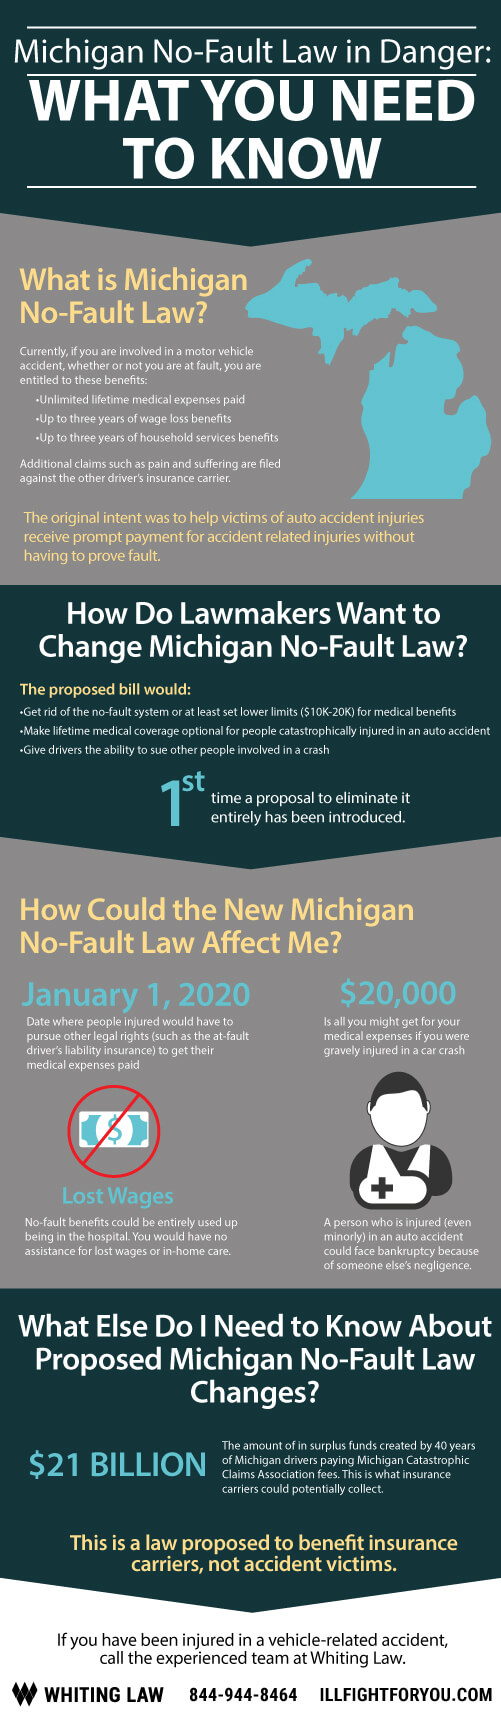 michigan-no-fault-law-in-danger-what-you